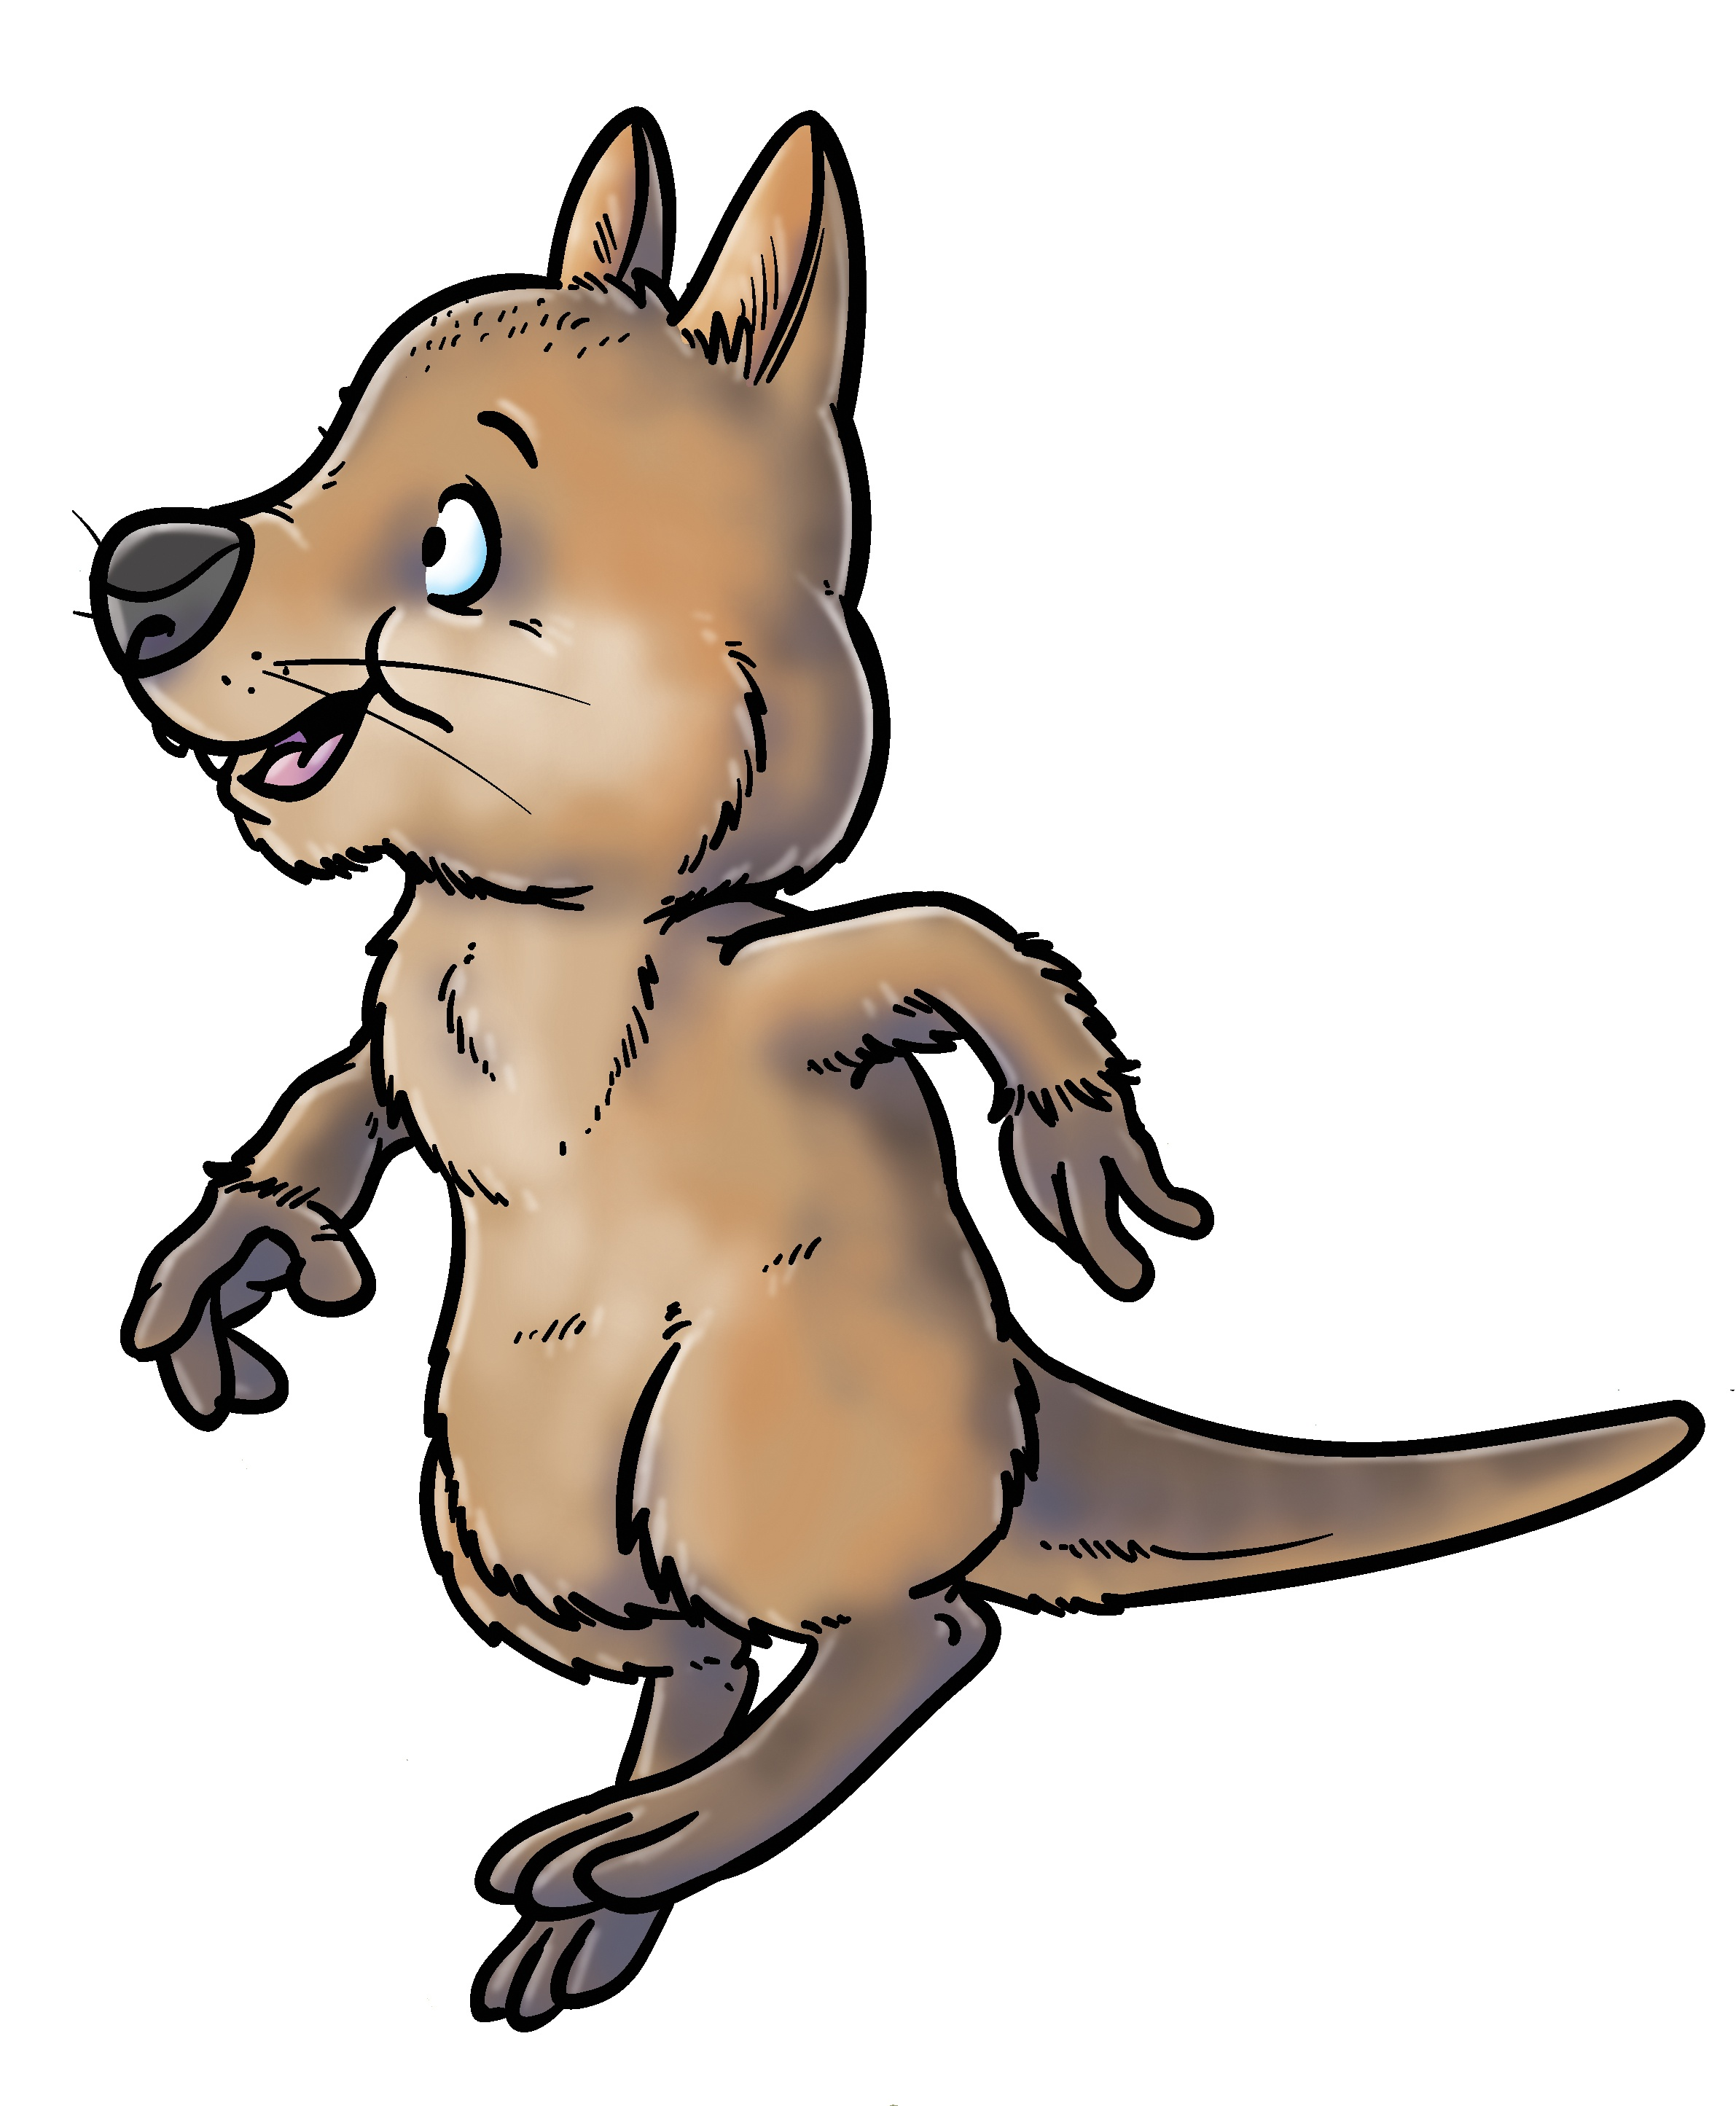 Quincey from Quincey Quokka's Quest from Ceratopia Books, a PRSIST book